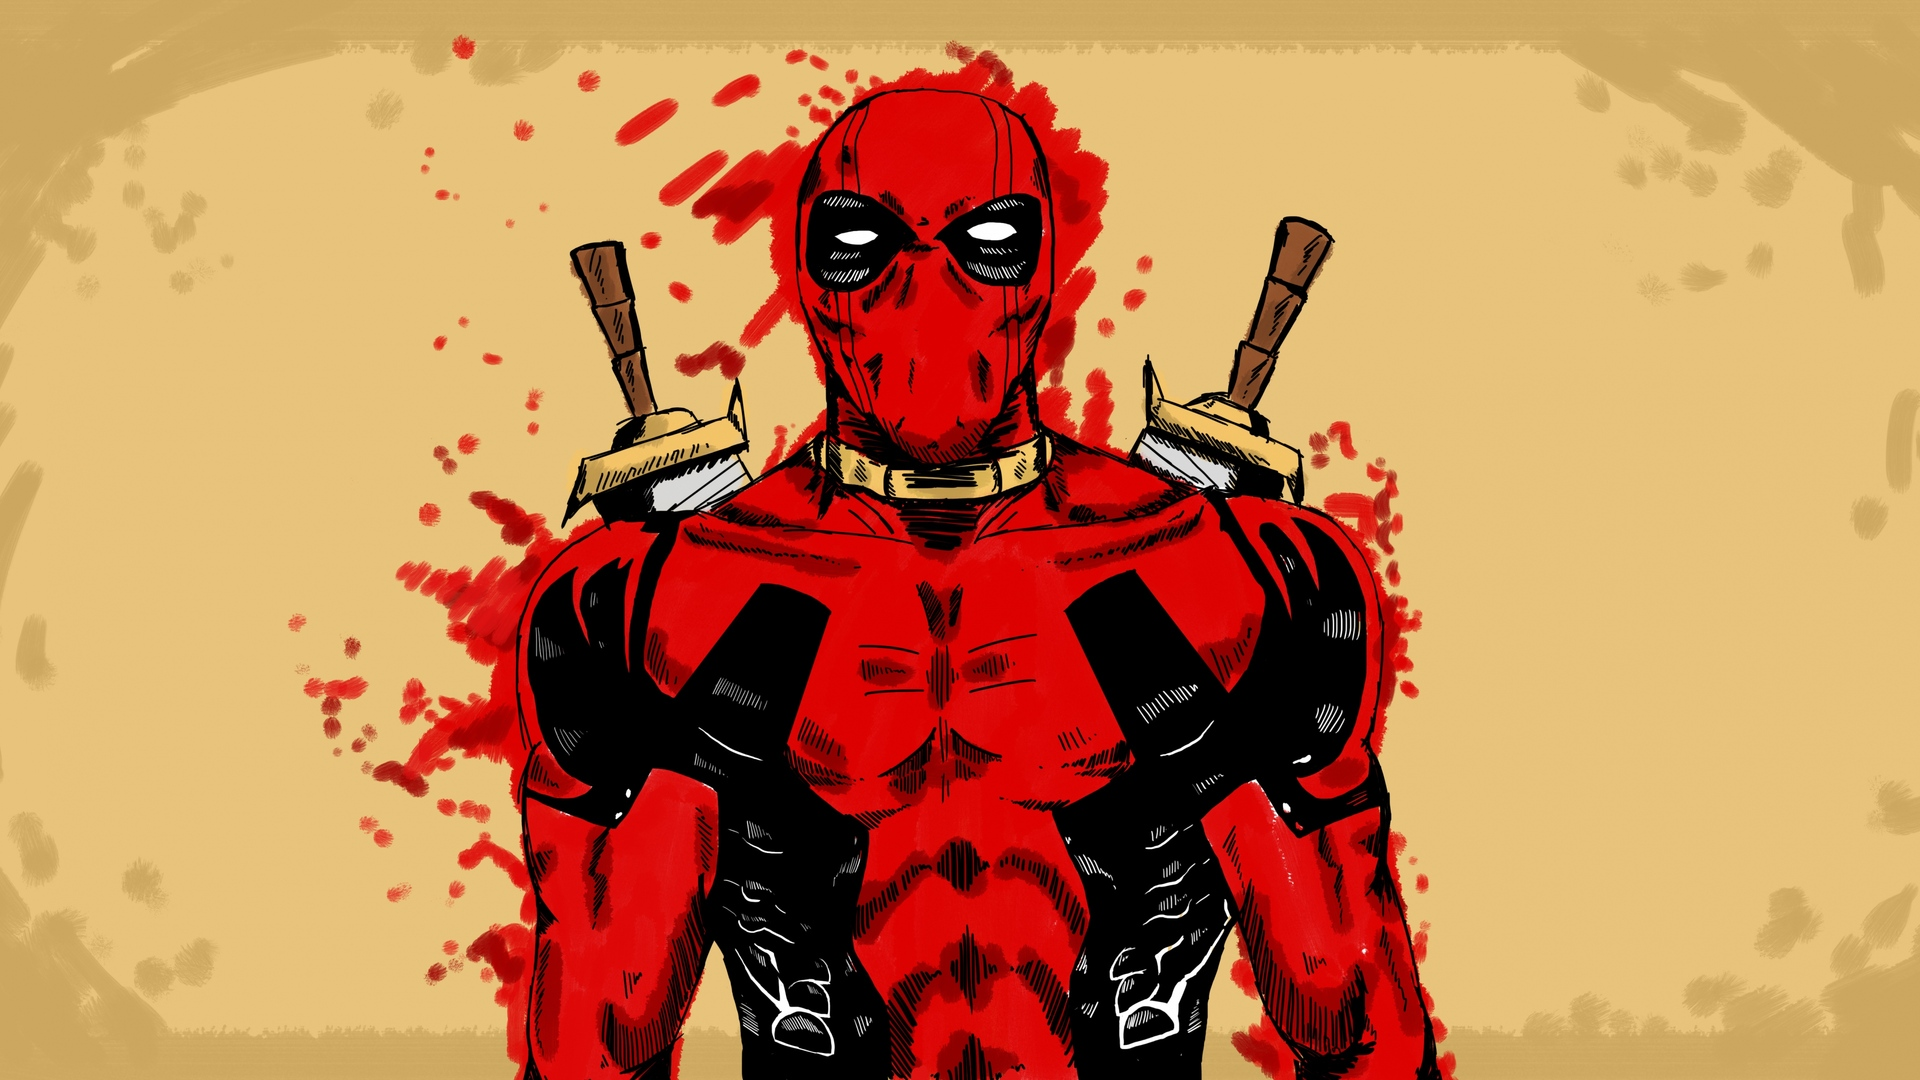 1920x1080 Deadpool Marvel Comic Art Laptop Full Hd 1080p Hd 4k Wallpapers Images Backgrounds Photos And Pictures